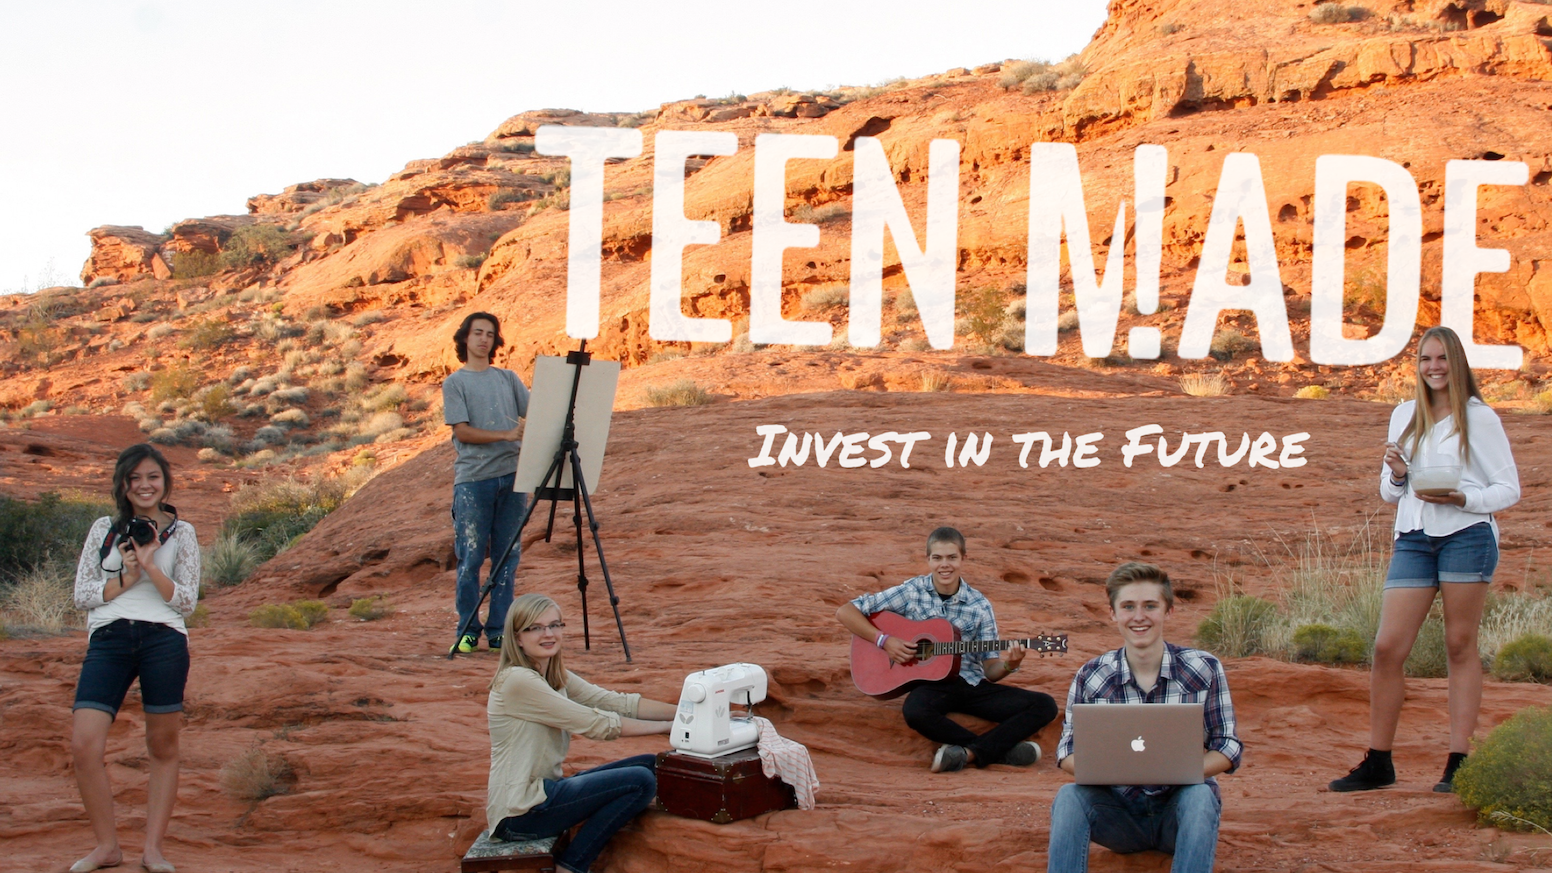 Teen Made is a 100  for teens  Teens can join projects  get mentors. Teen Made  Invest in the Future by Dena  Sterling s Mom    Kickstarter